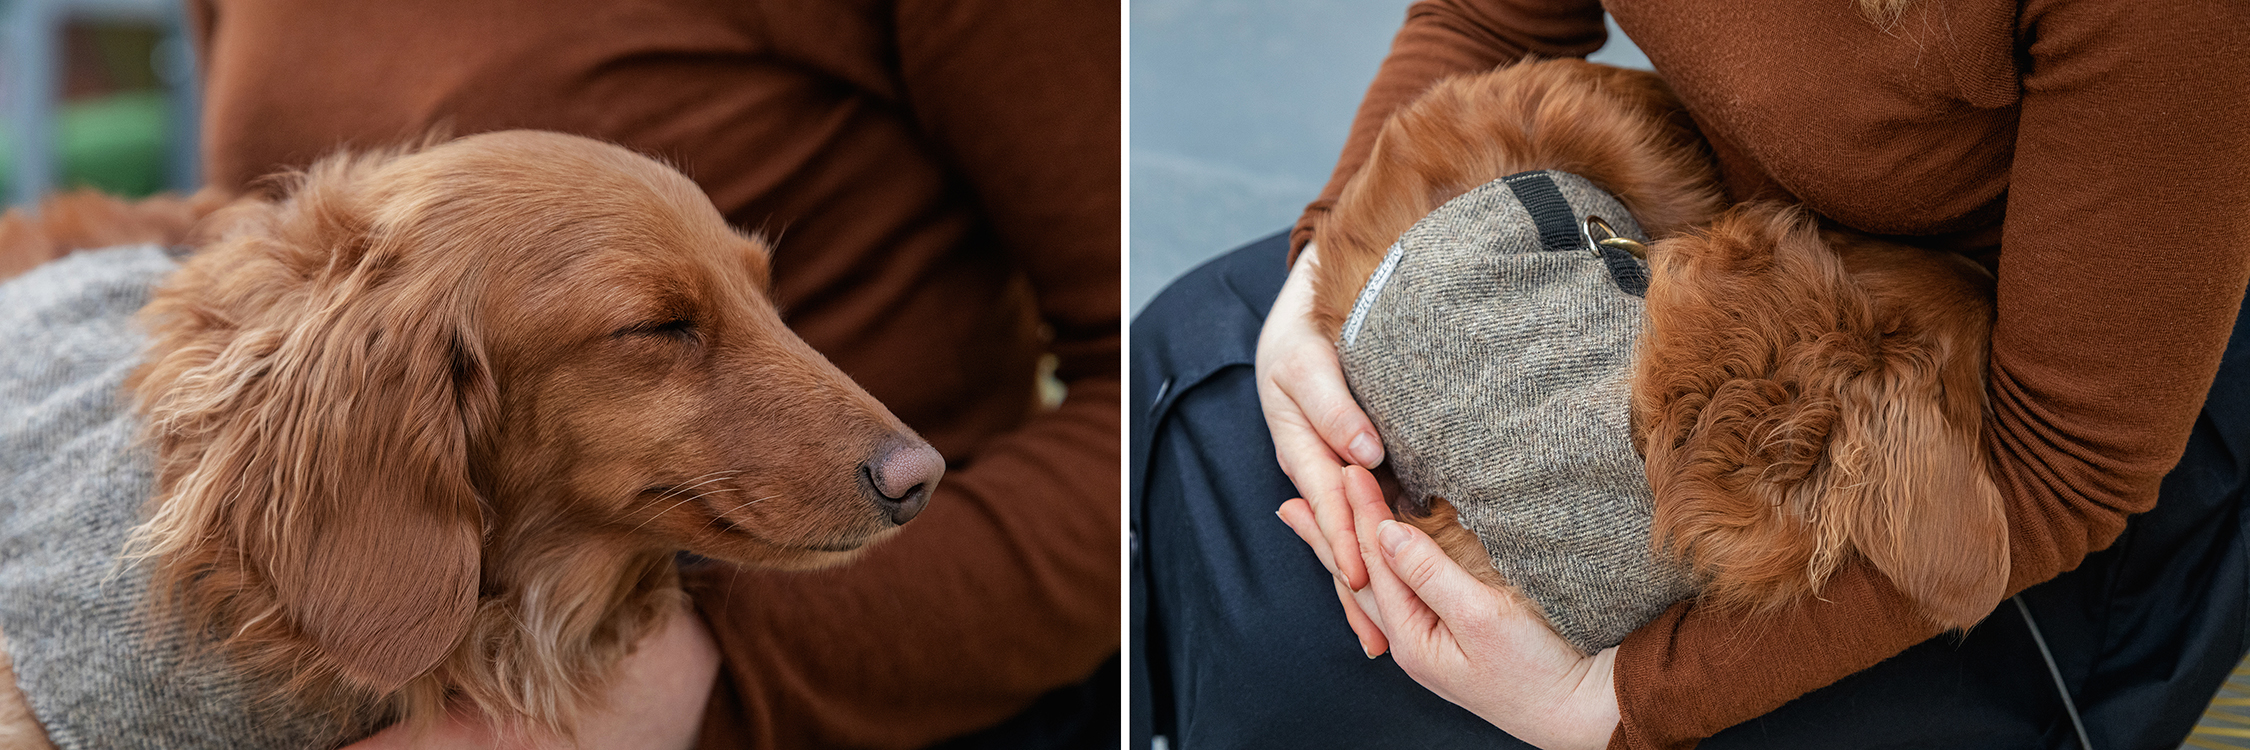 Two detail images of Goldie the dog sleeping